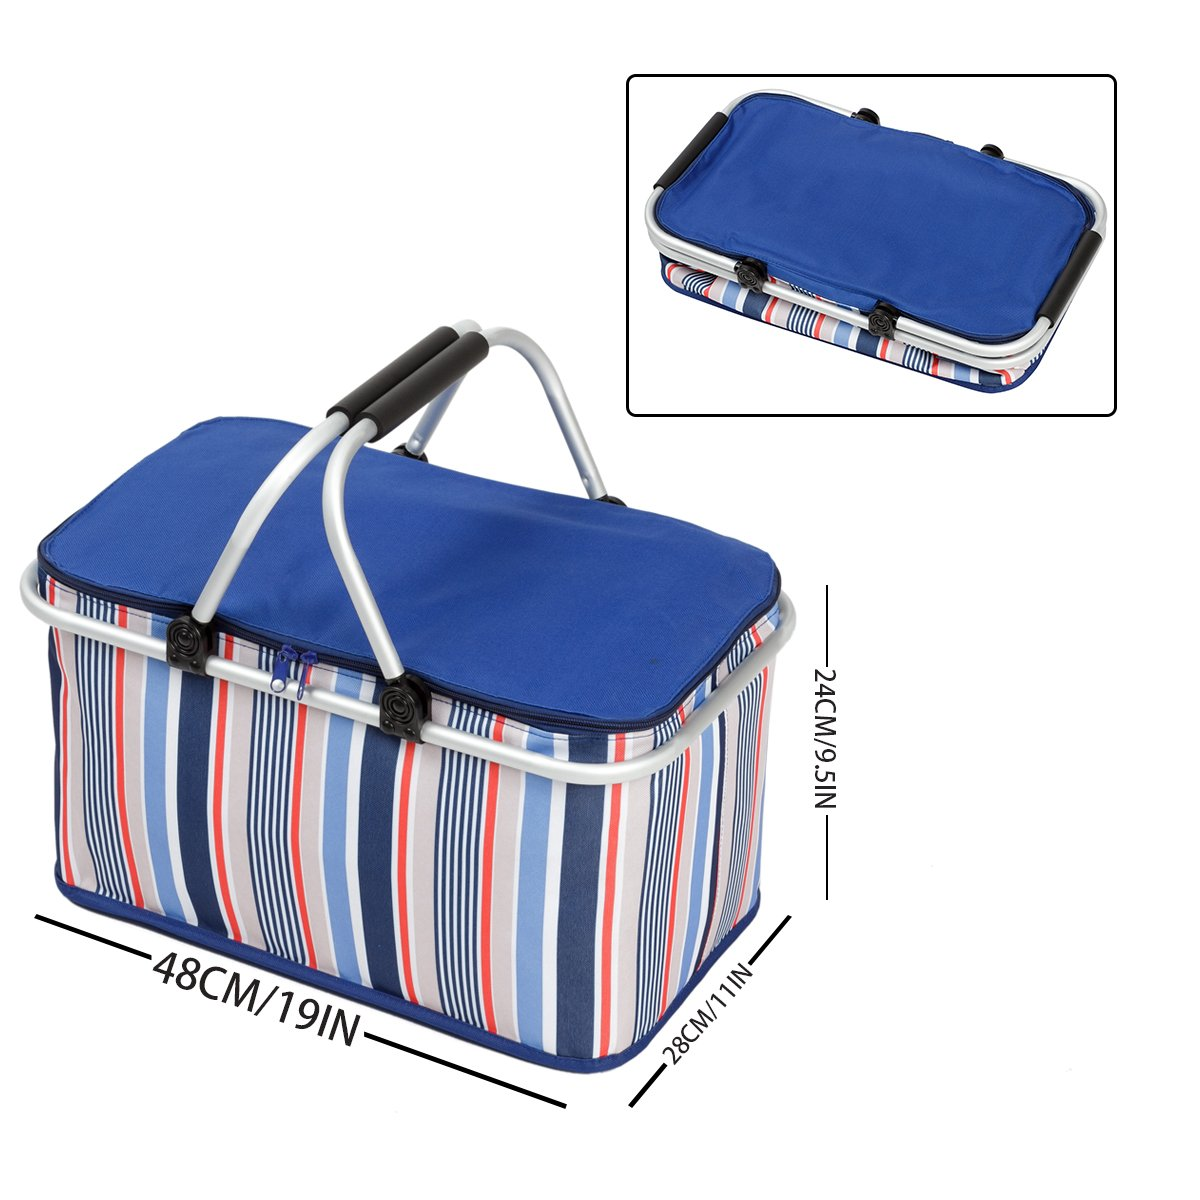 WISHPOOL Oxford Cloth Insulated Lunch Bag Reusable Collapsible Cooler Tote Box for Picnic Hiking (Bule1)